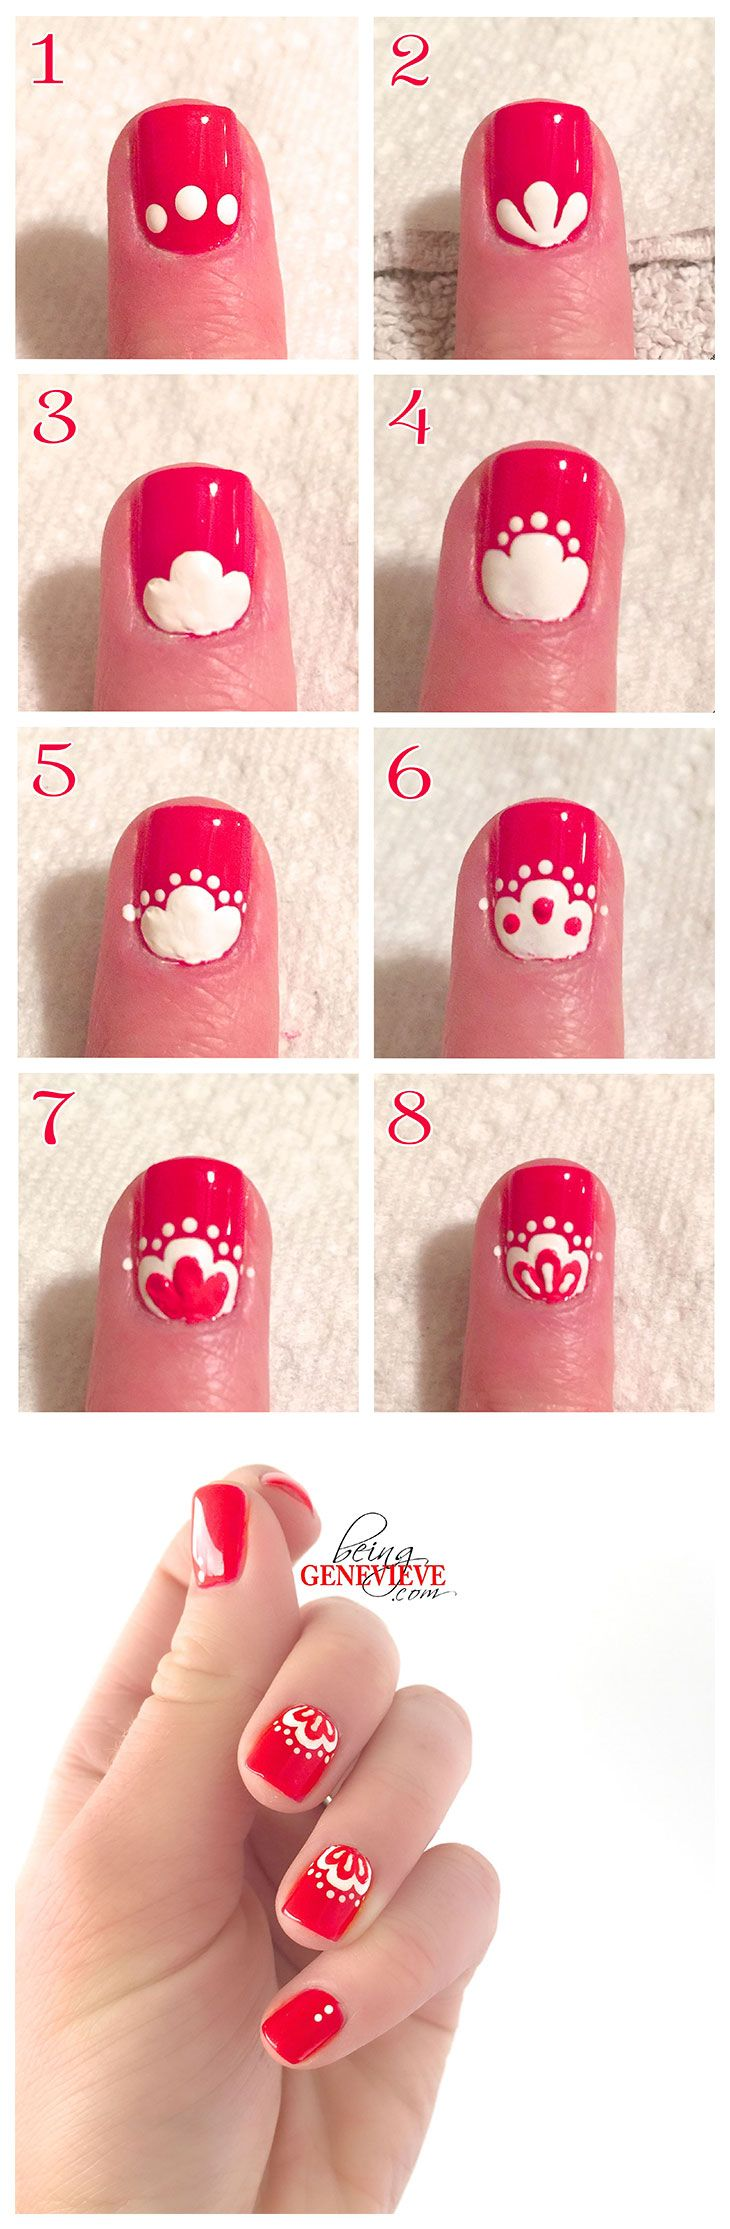 how to make nails look nice without polish